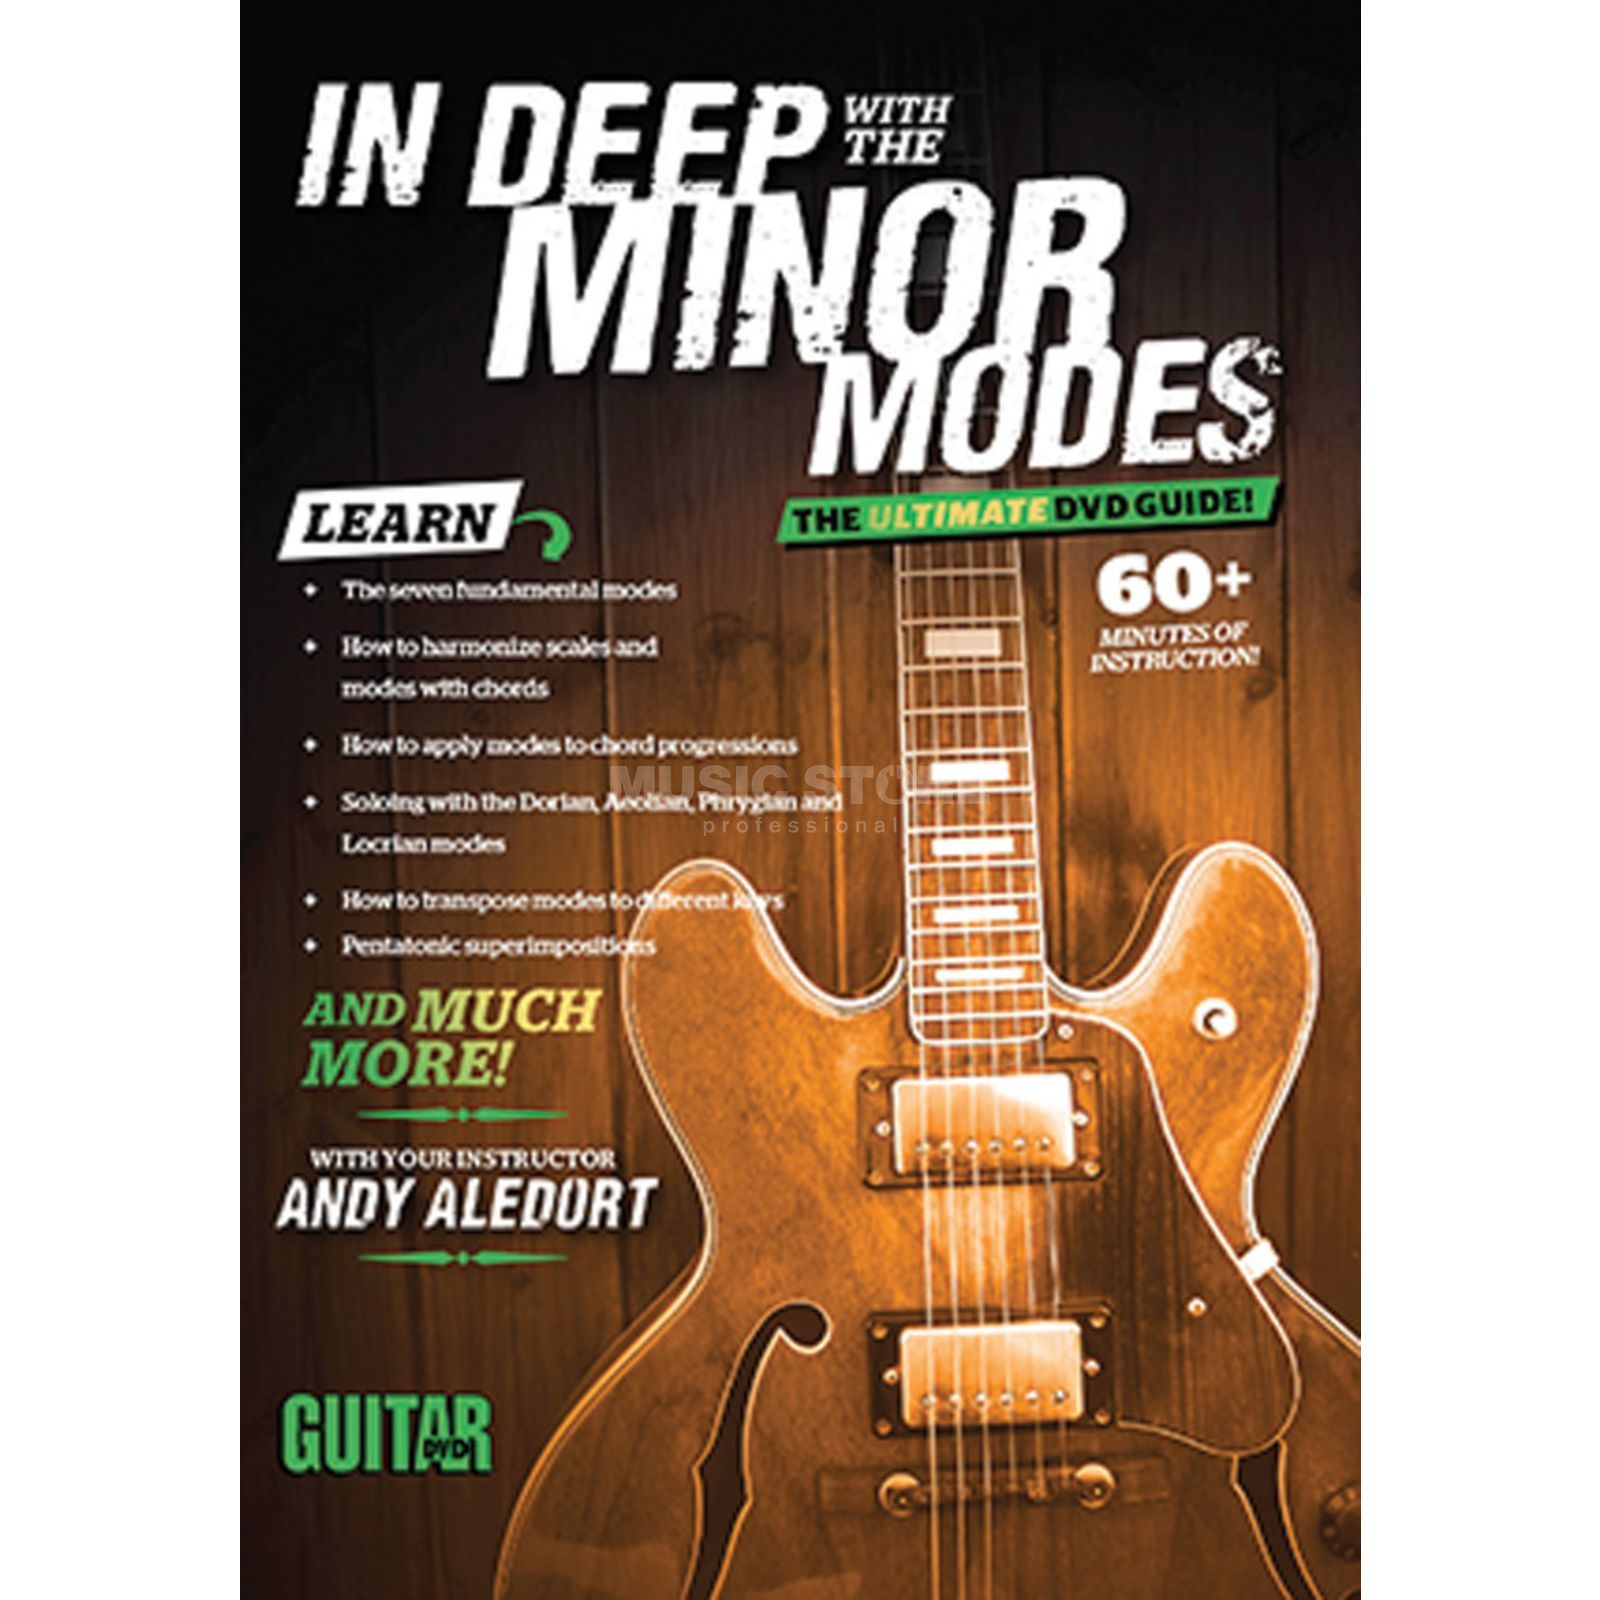 Alfred Music Guitar World: In Deep with the Minor Modes Image du produit